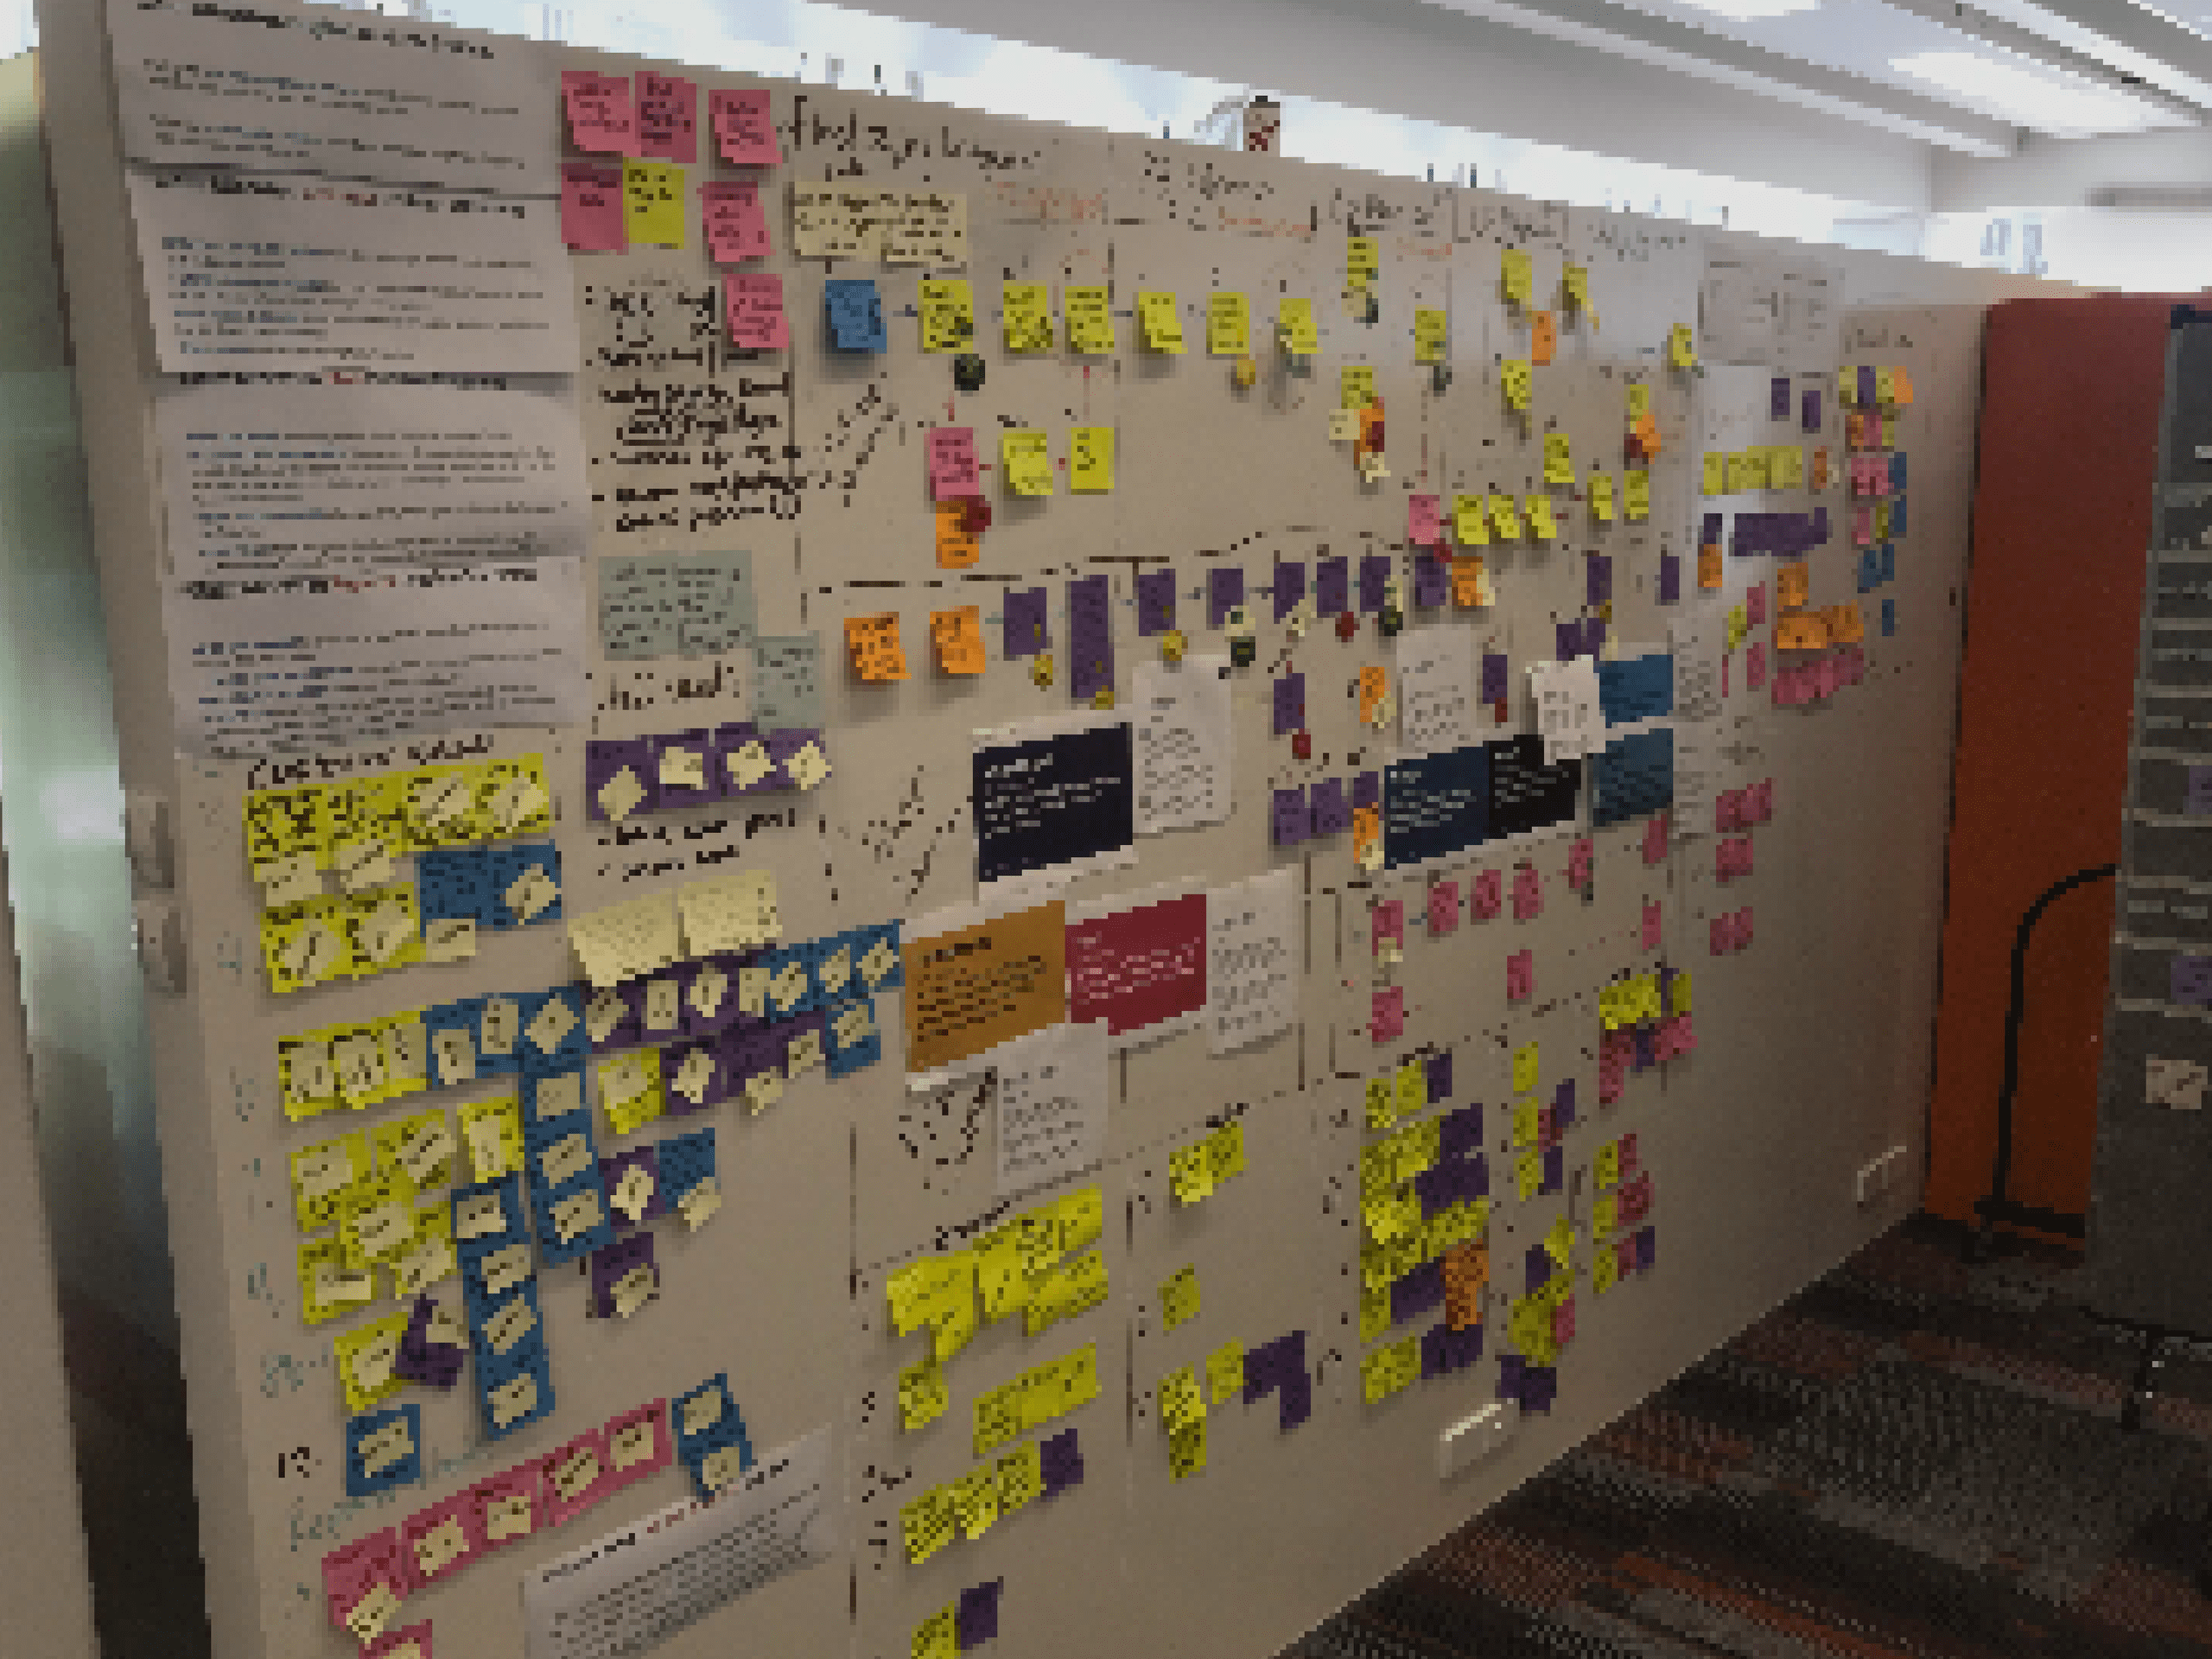 Our work in progress service blueprint wall — a white-boarded wall covered end-end with post-its.